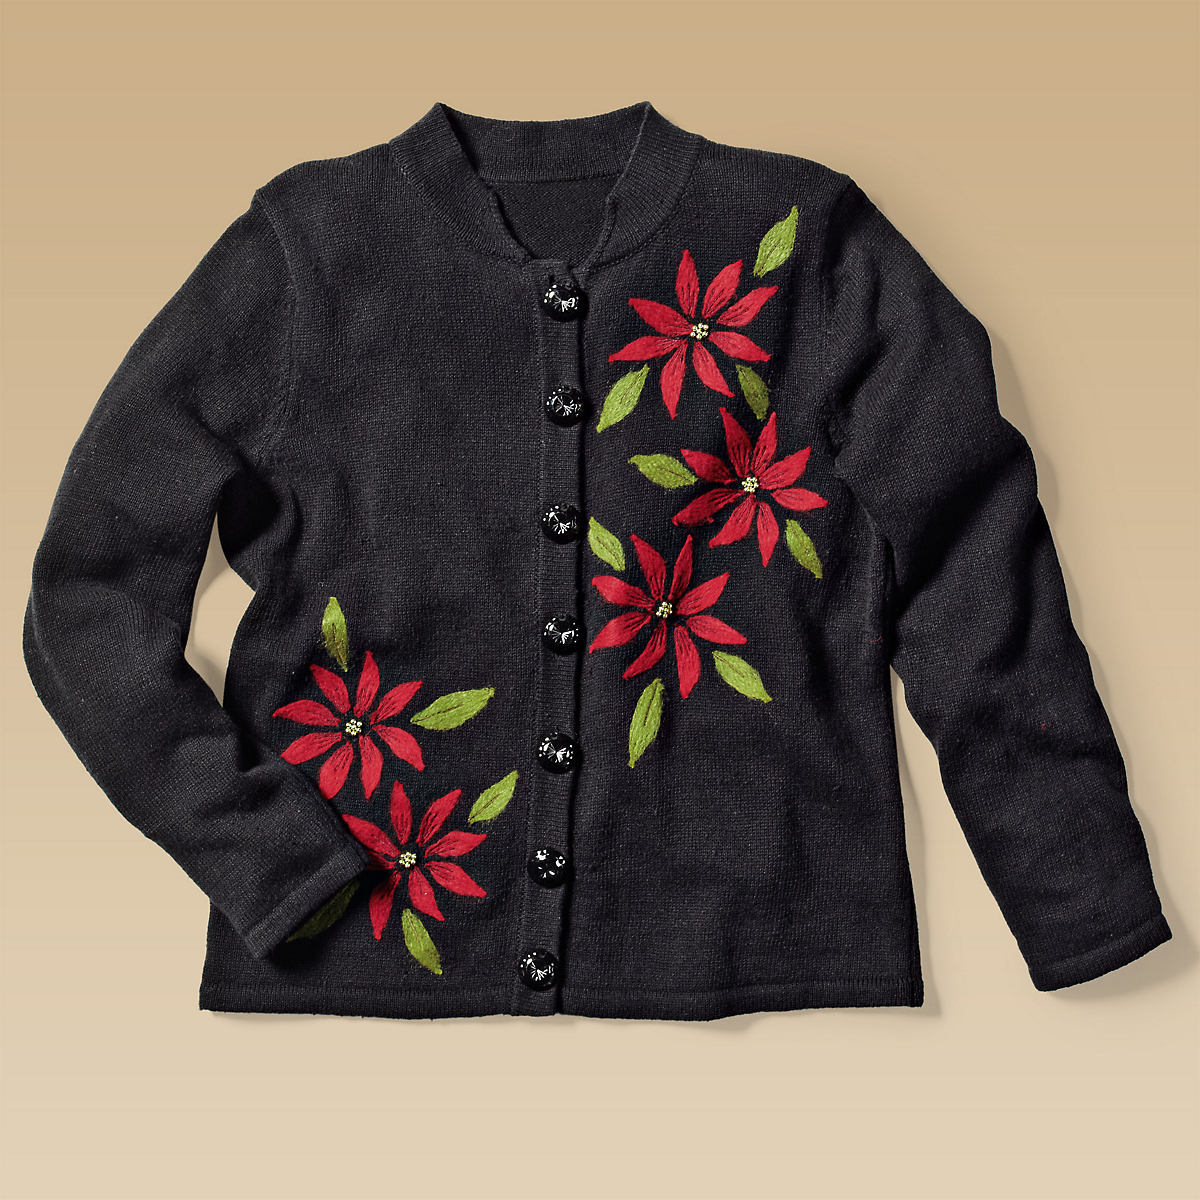 Poinsettia Cardigan